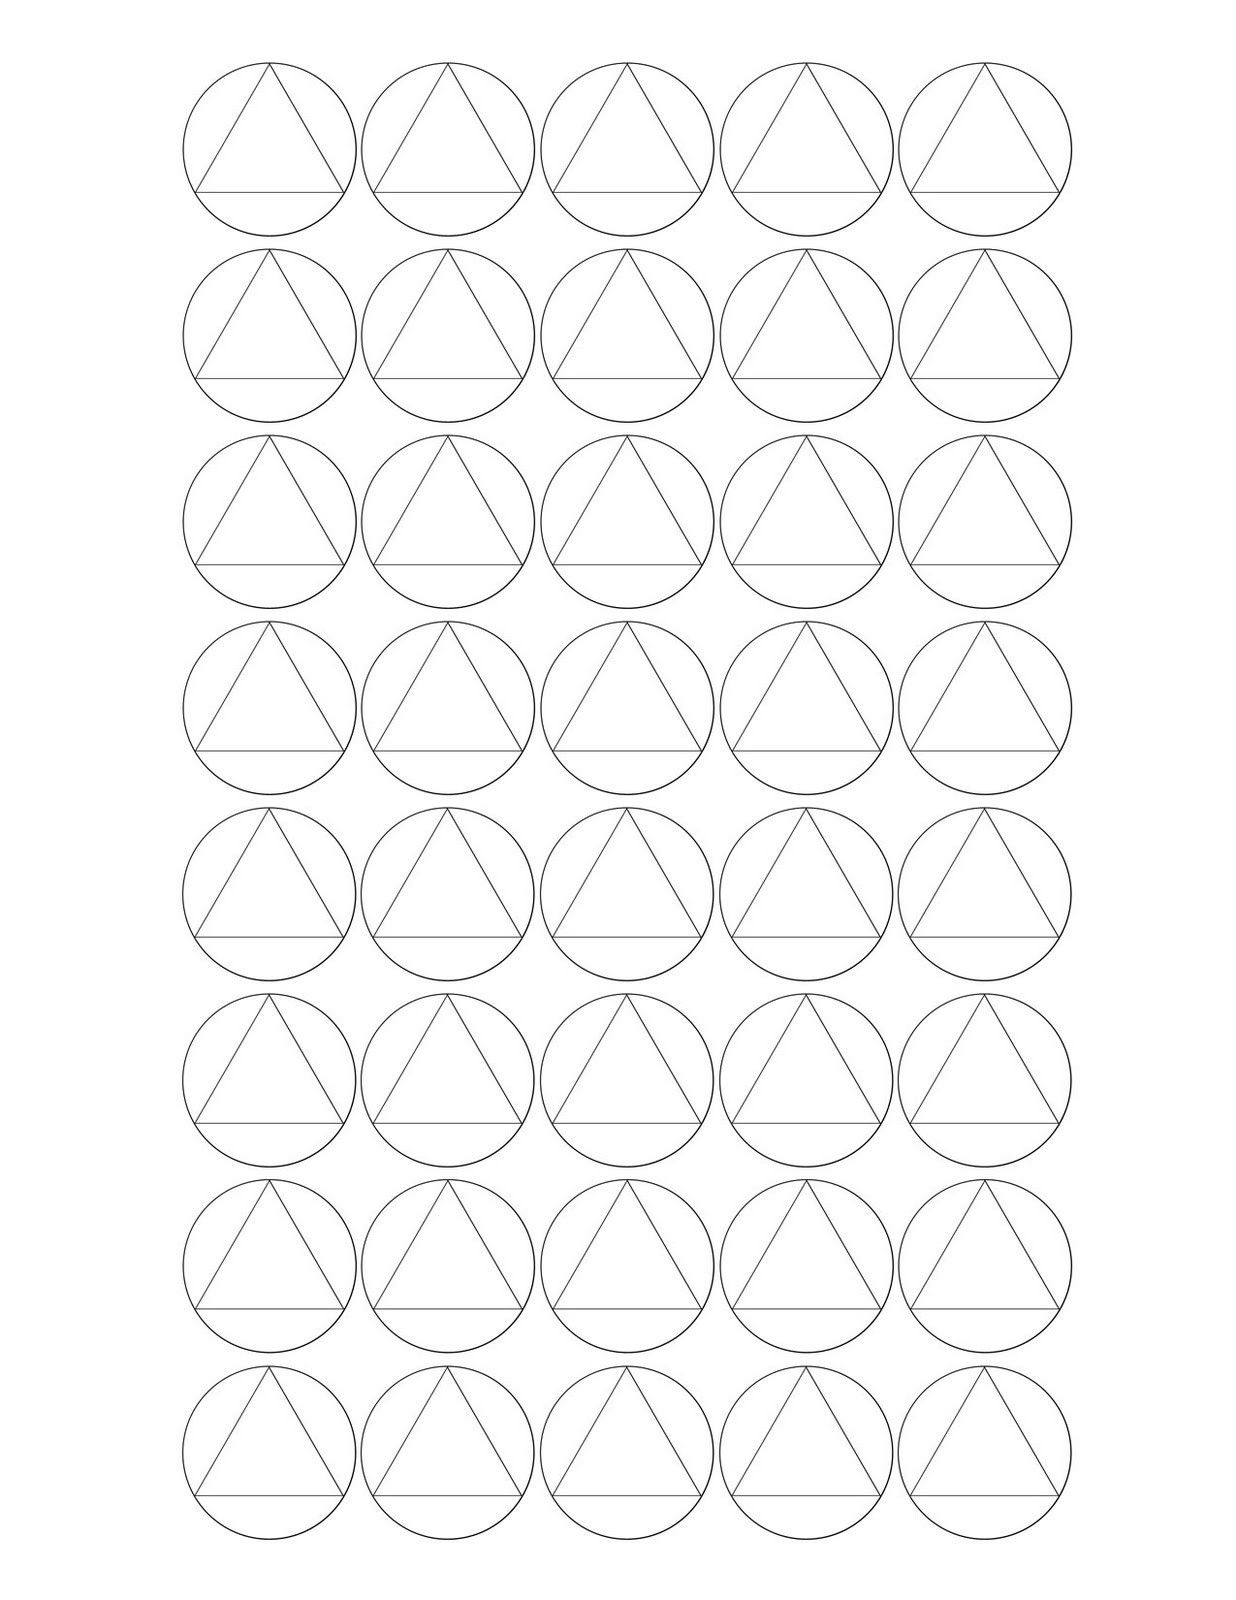 paper ball template - Gecce.tackletarts.co